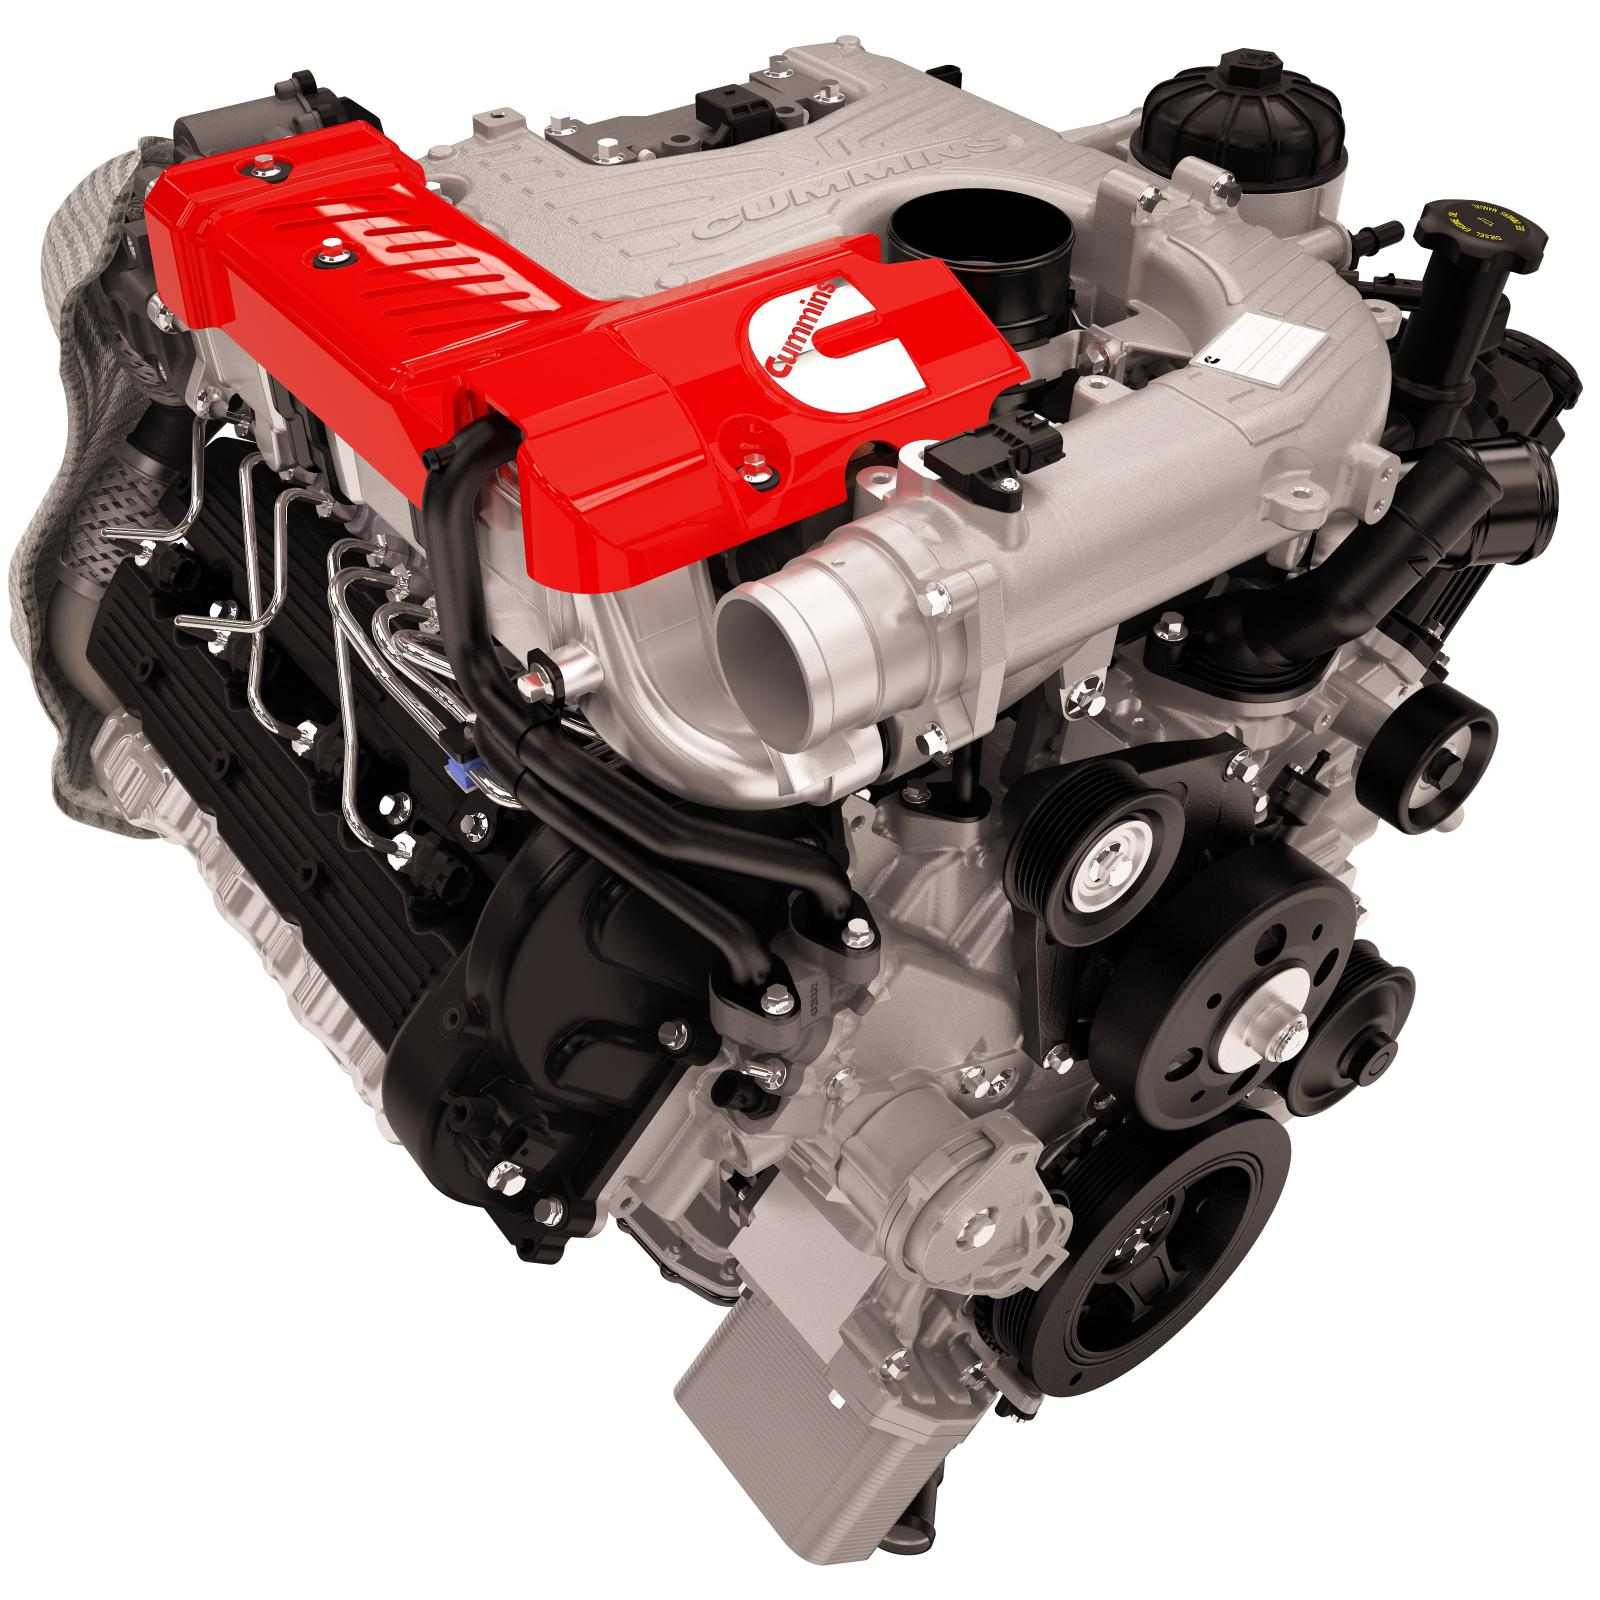 Nissan 5.0 Cummins >> Cummins Diesel Engine of 2016 Nissan Titan XD is a Technological Showcase - autoevolution